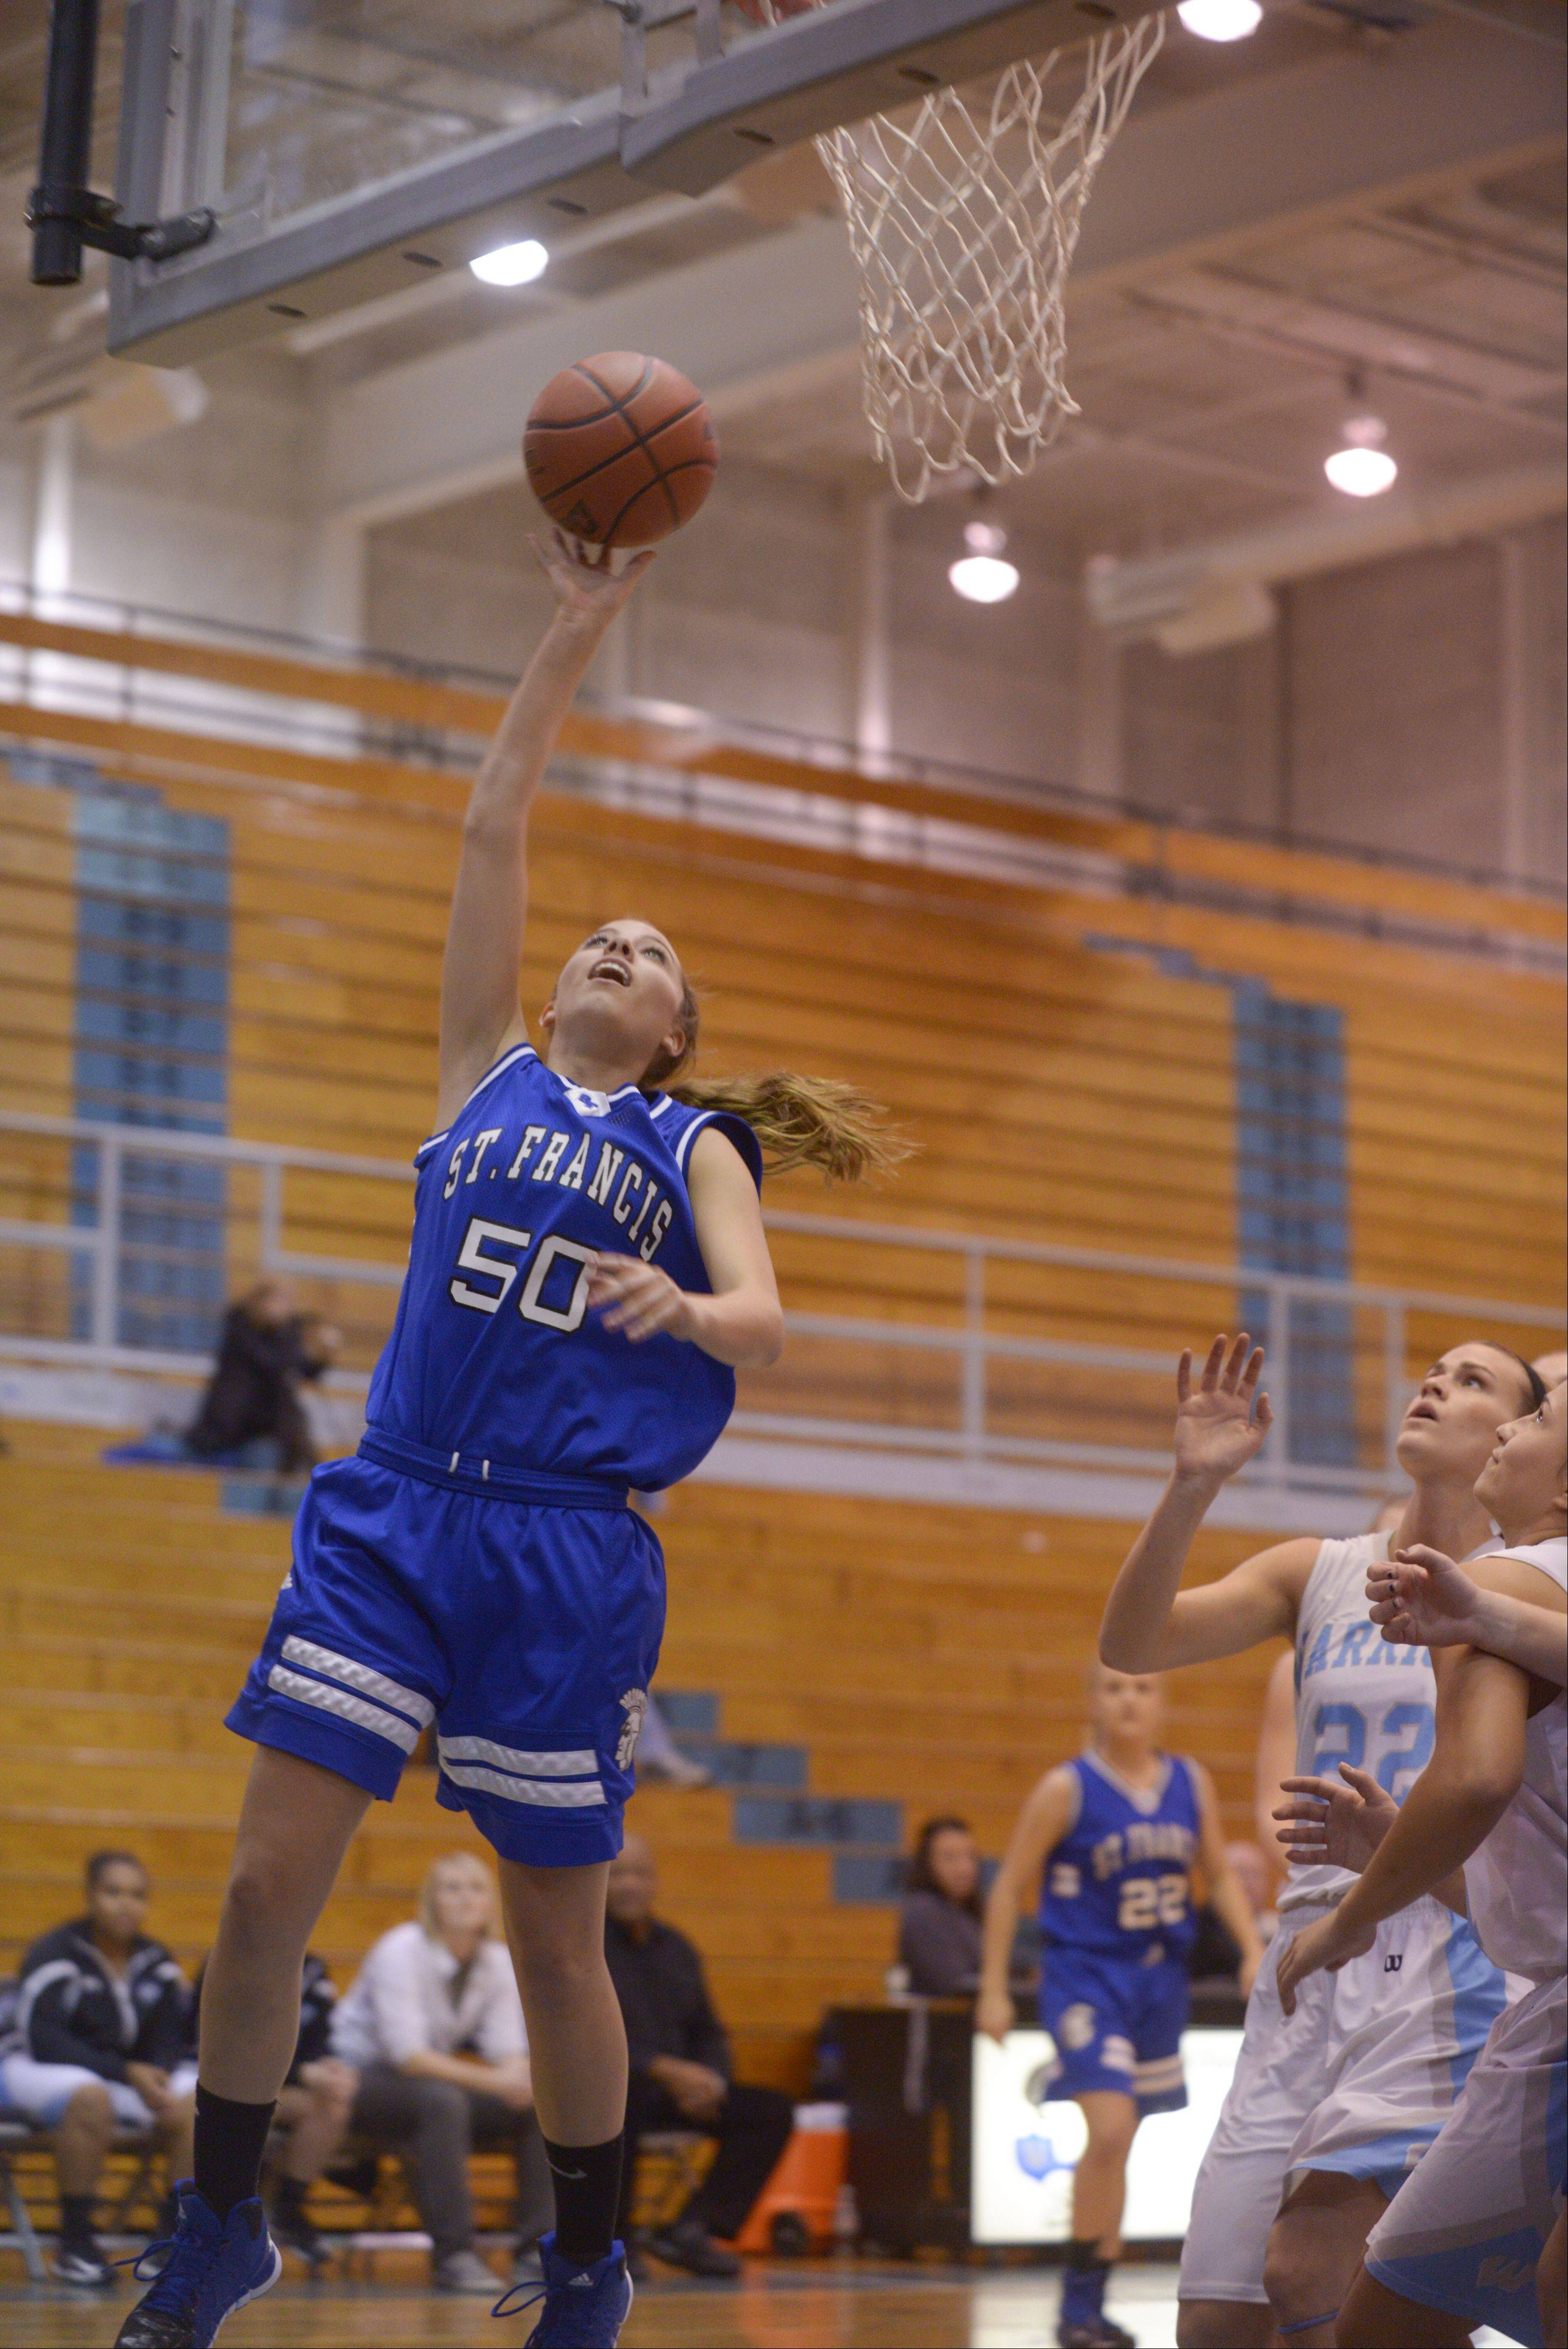 St. Francis' Reagan Sproat drives to the basket against Willowbrook, during girls basketball in Villa Park, Thursday.